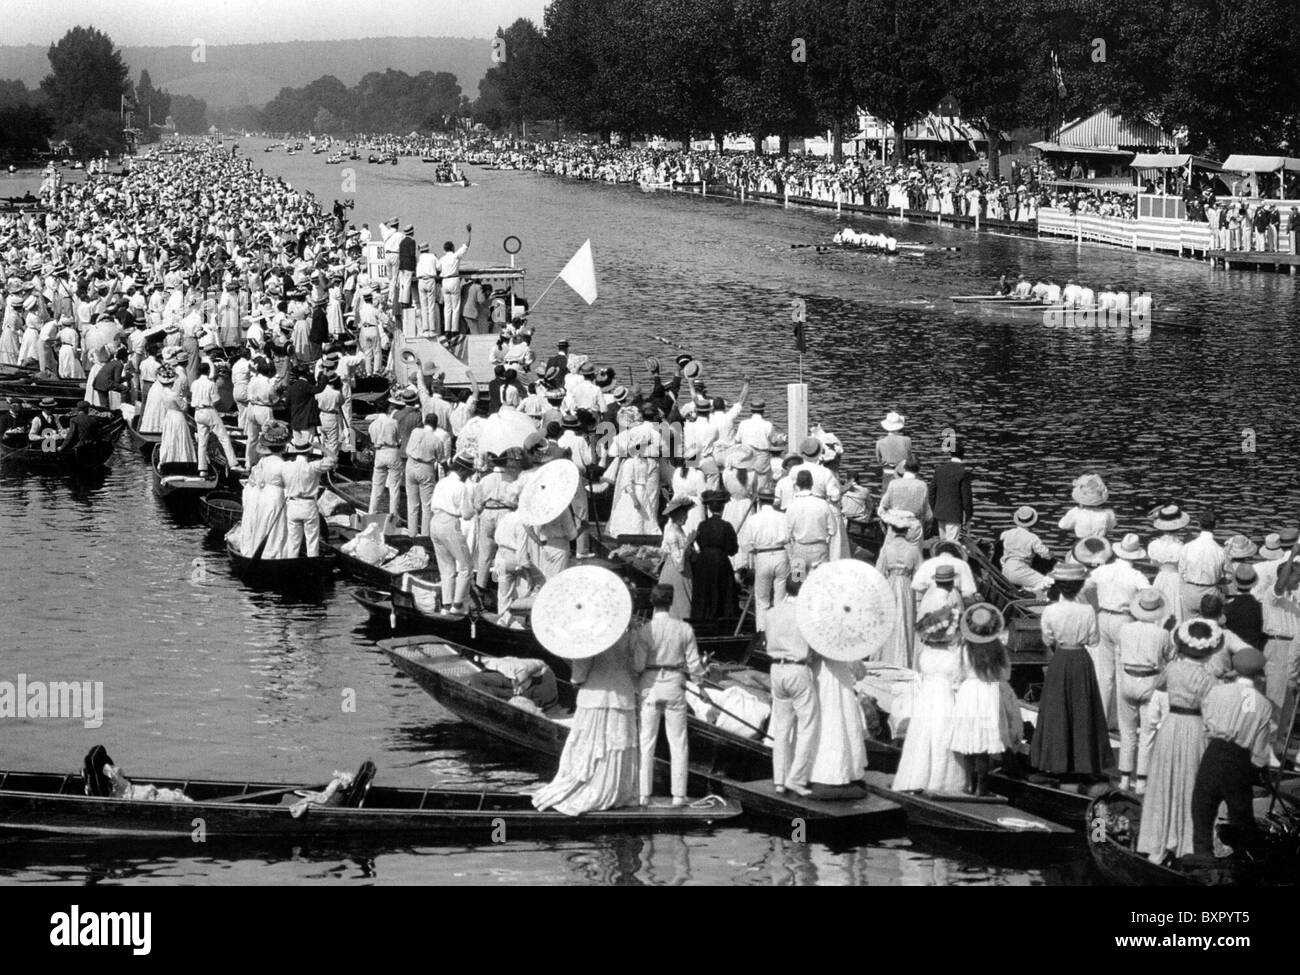 LONDON 1908 OLYMPICS  Rowing event on the Thames at Henley - Stock Image